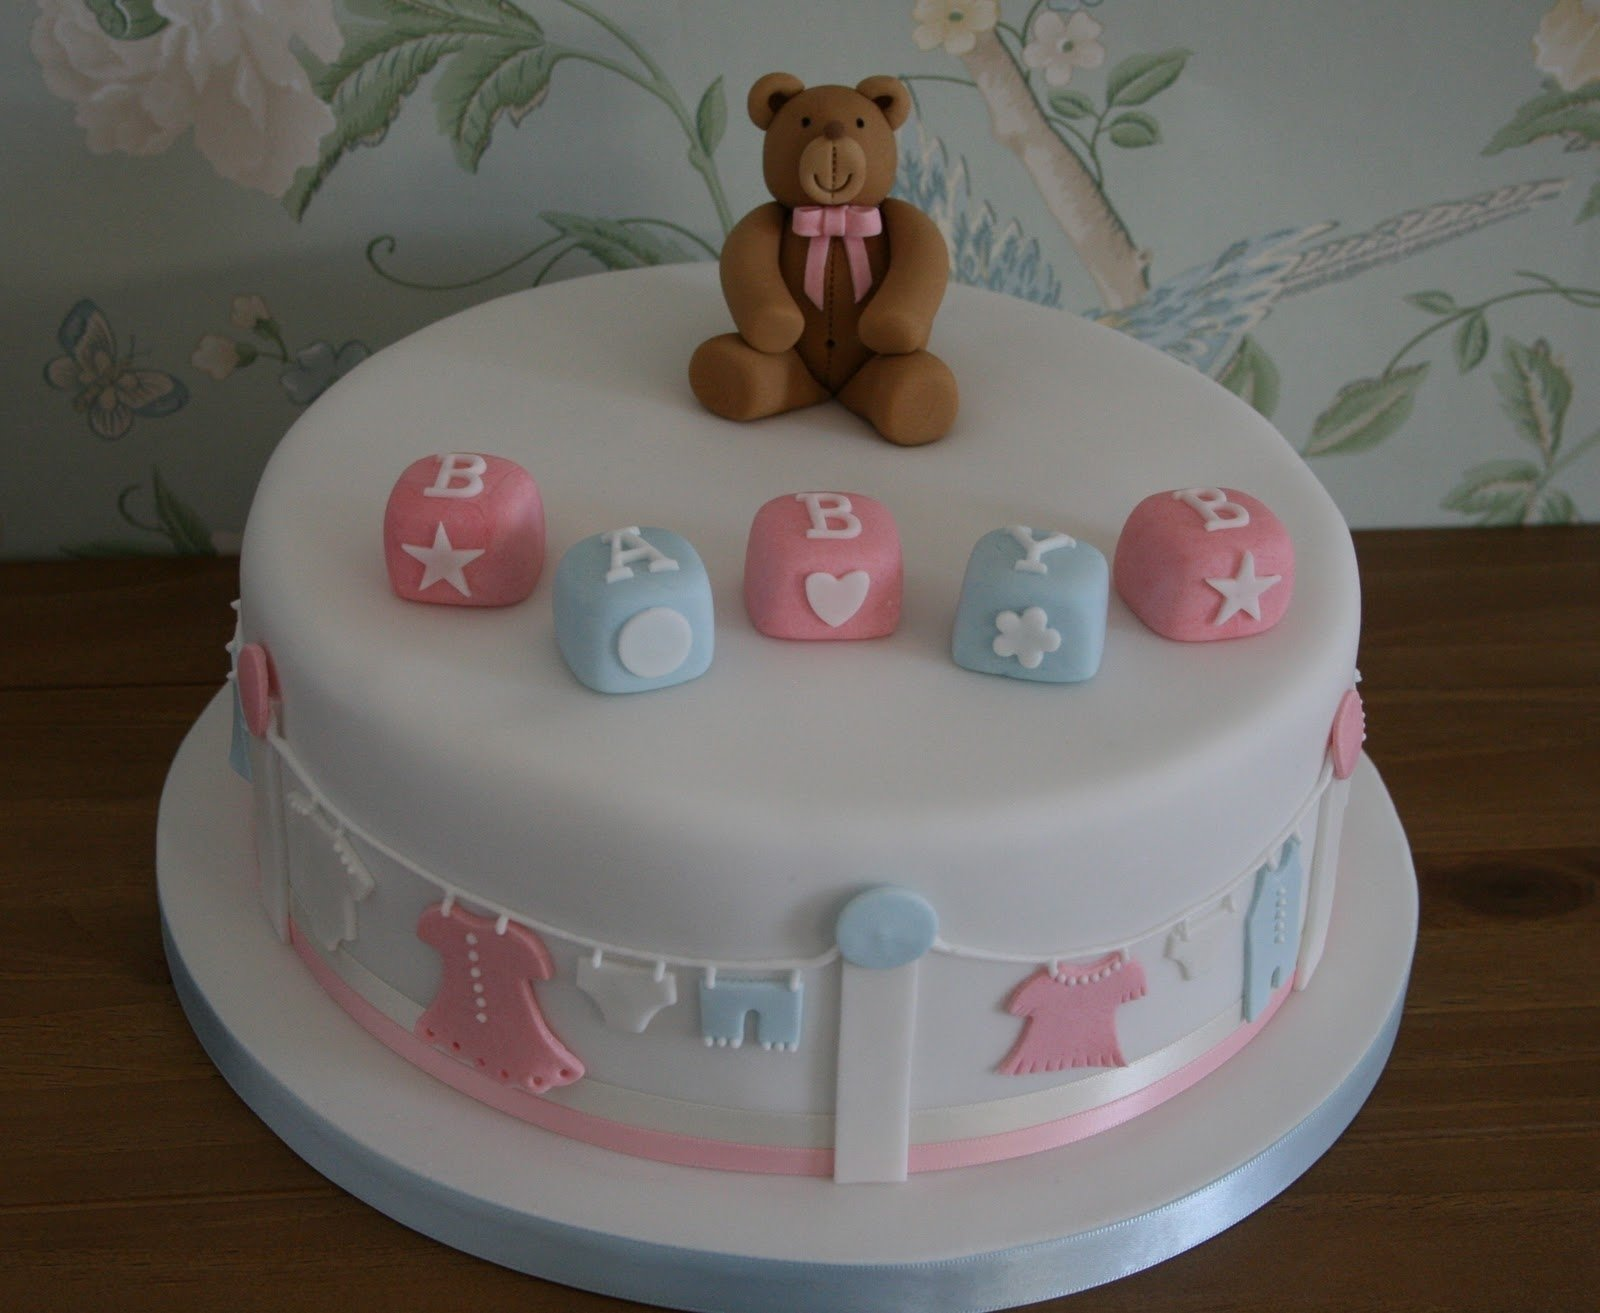 10 Wonderful Ideas For Baby Shower Cakes cute baby shower cake ideas omega center ideas for baby 1 2020